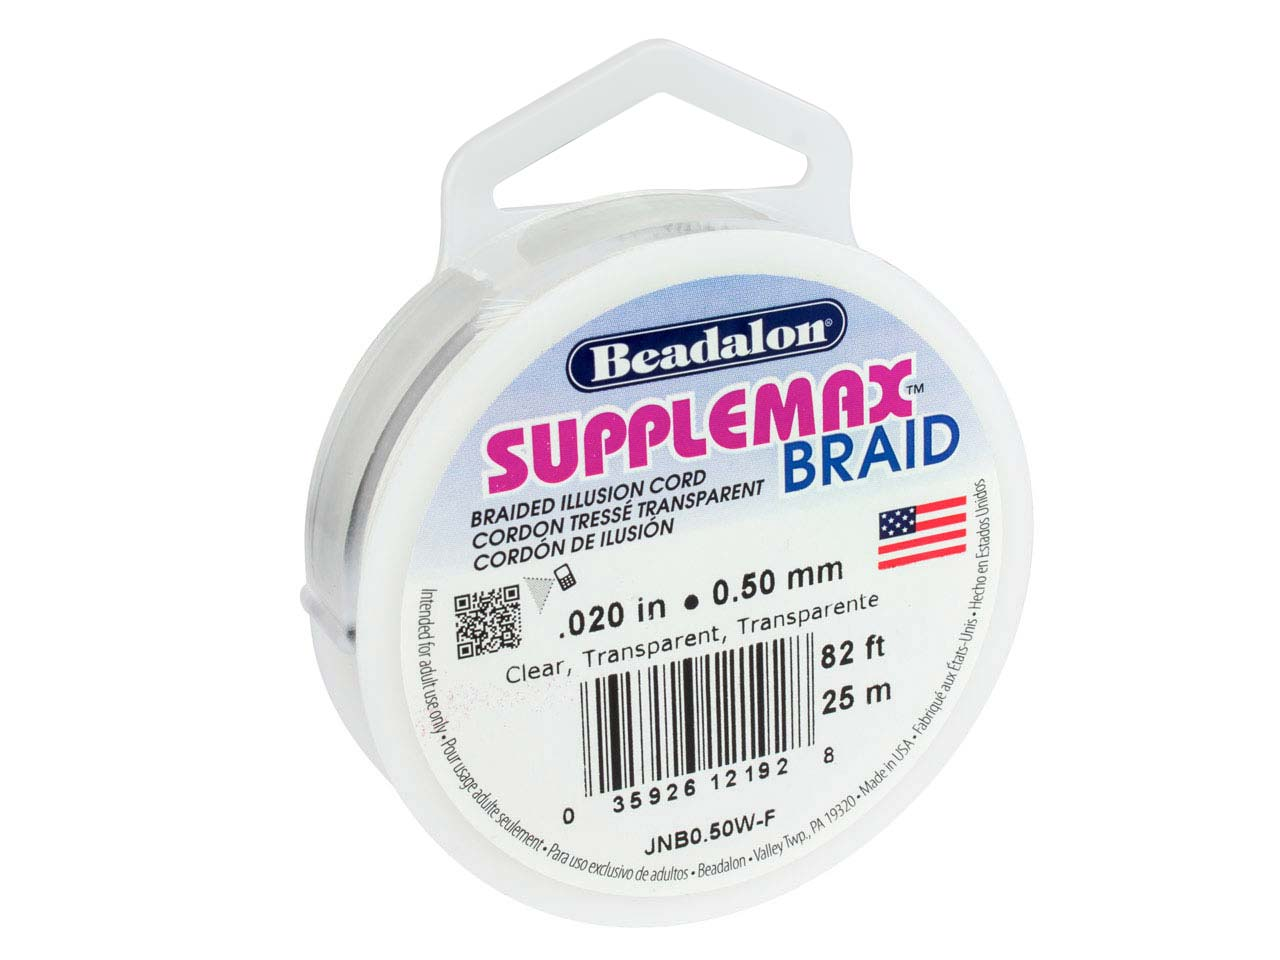 Beadalon Supplemax Braid Nylon     Cord, 0.50mm X 25m, Clear